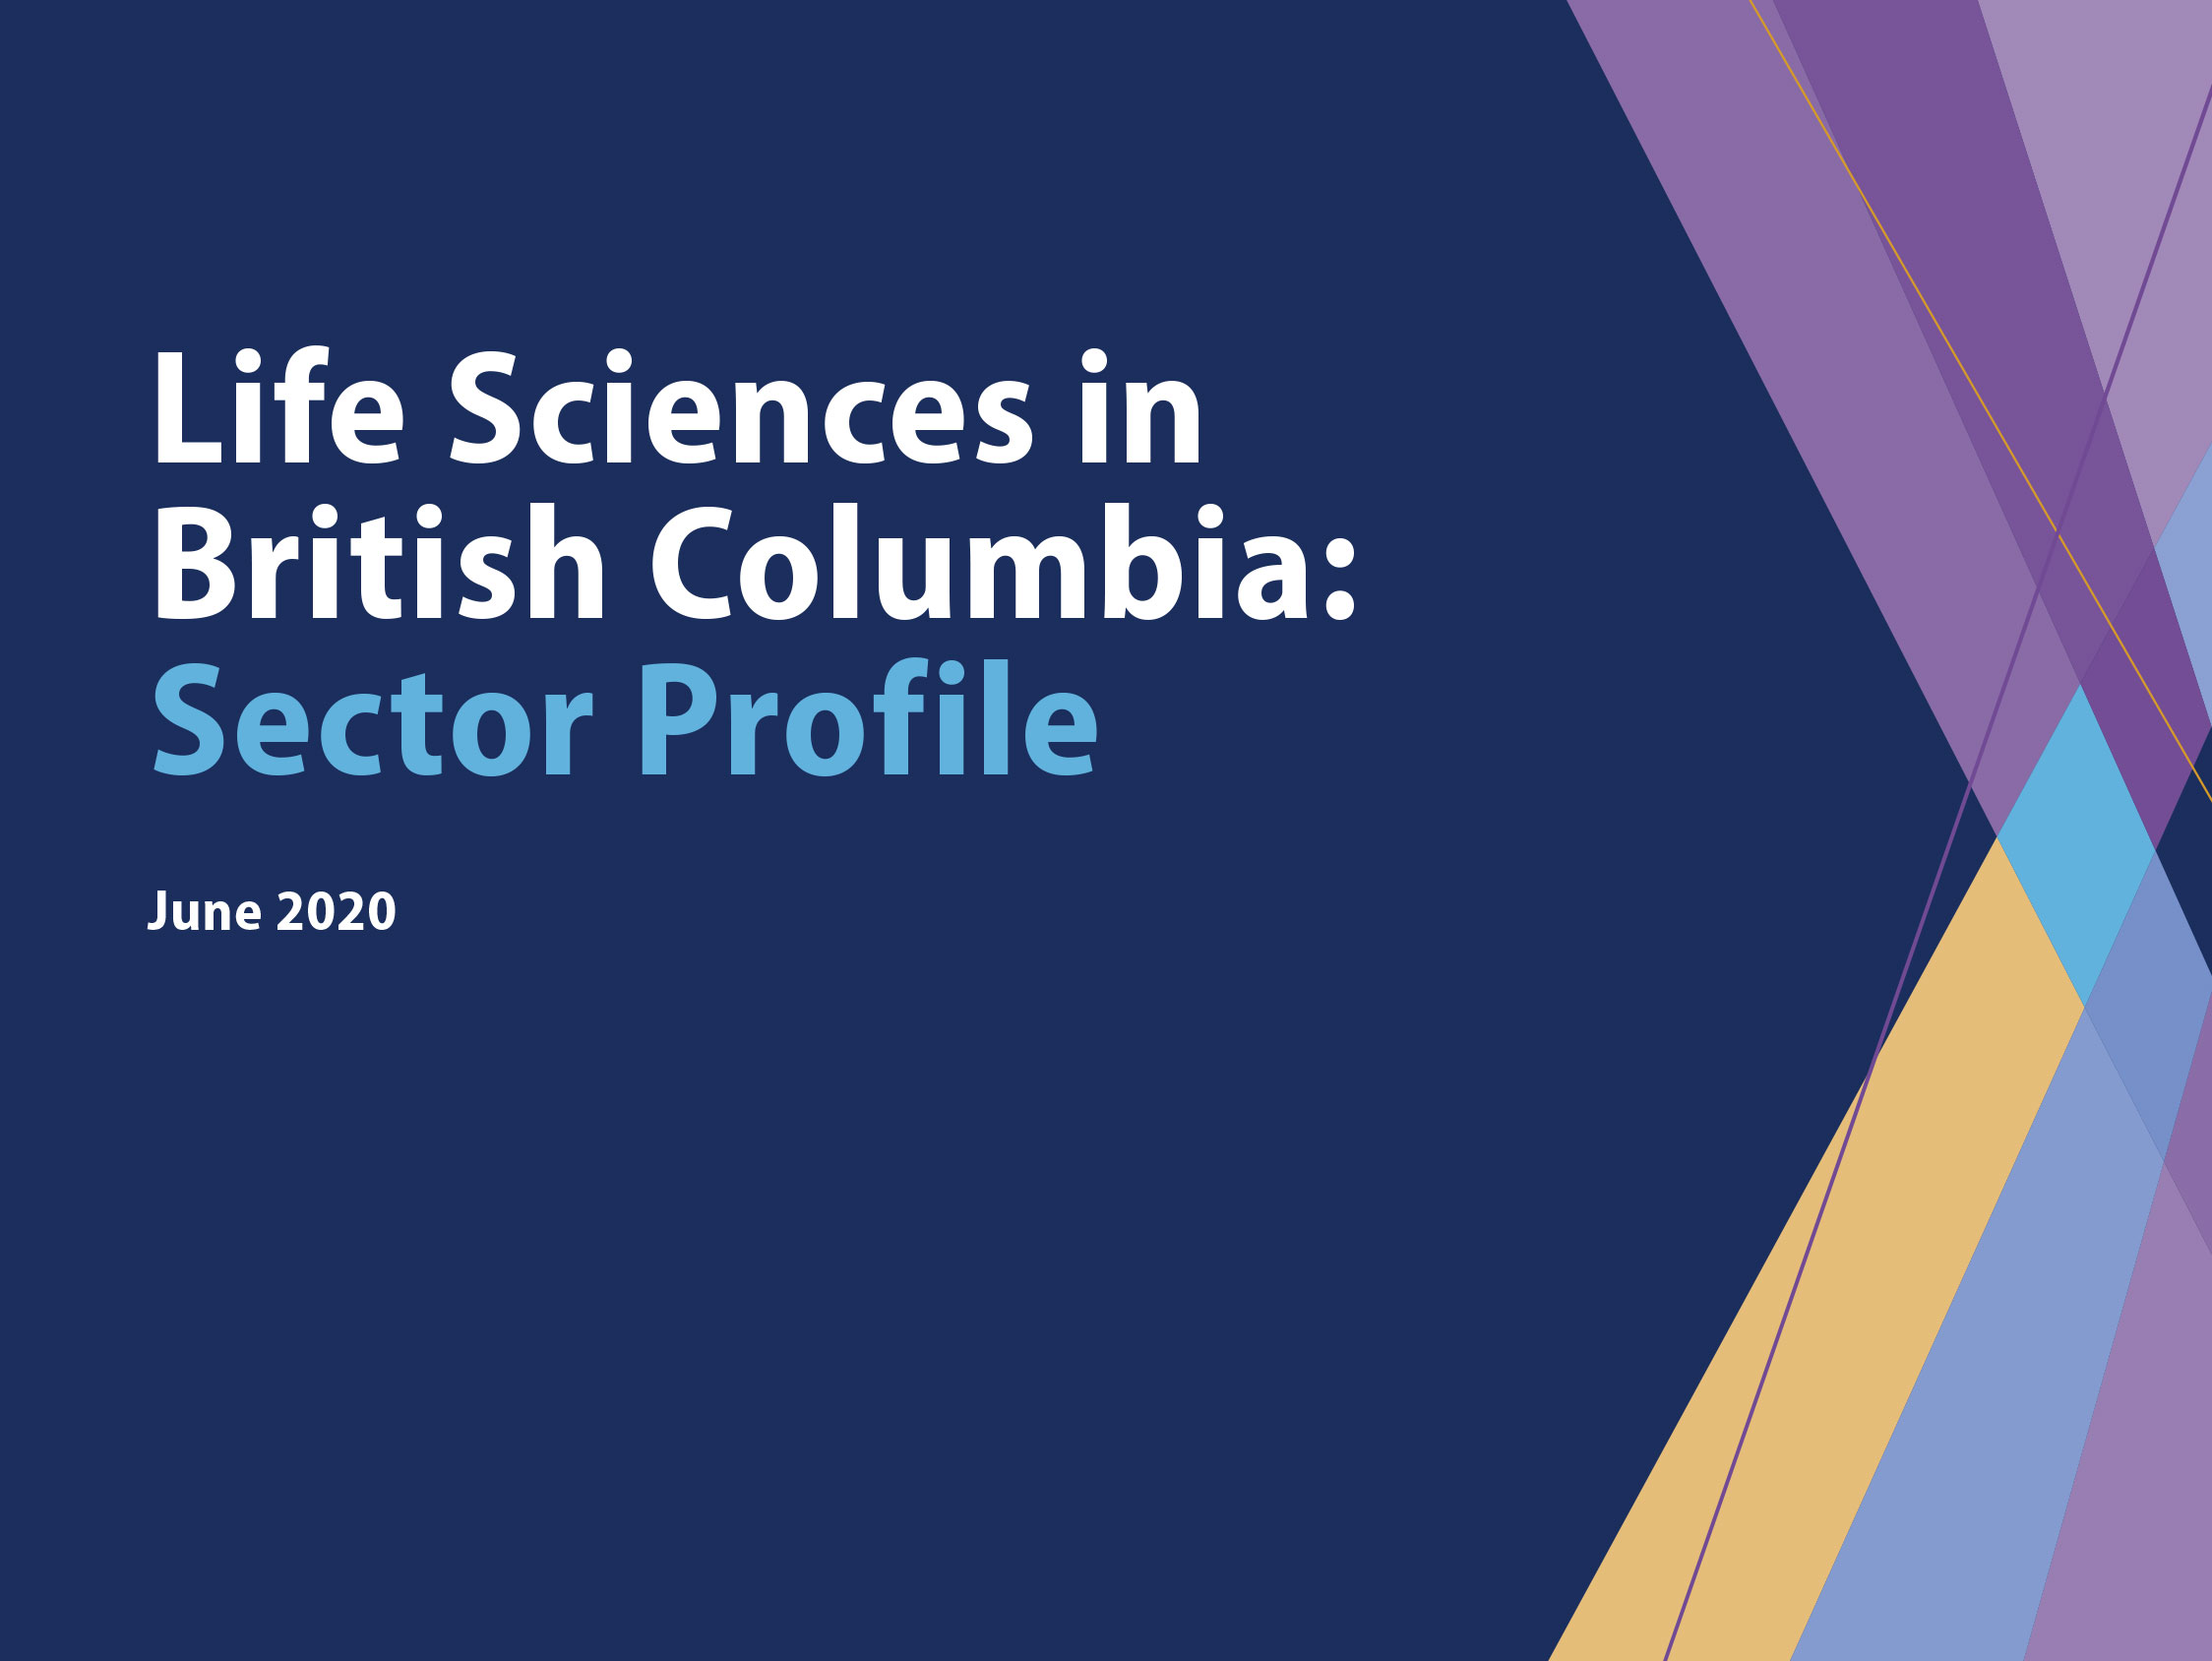 Life Sciences in British Columbia: Sector profile front page